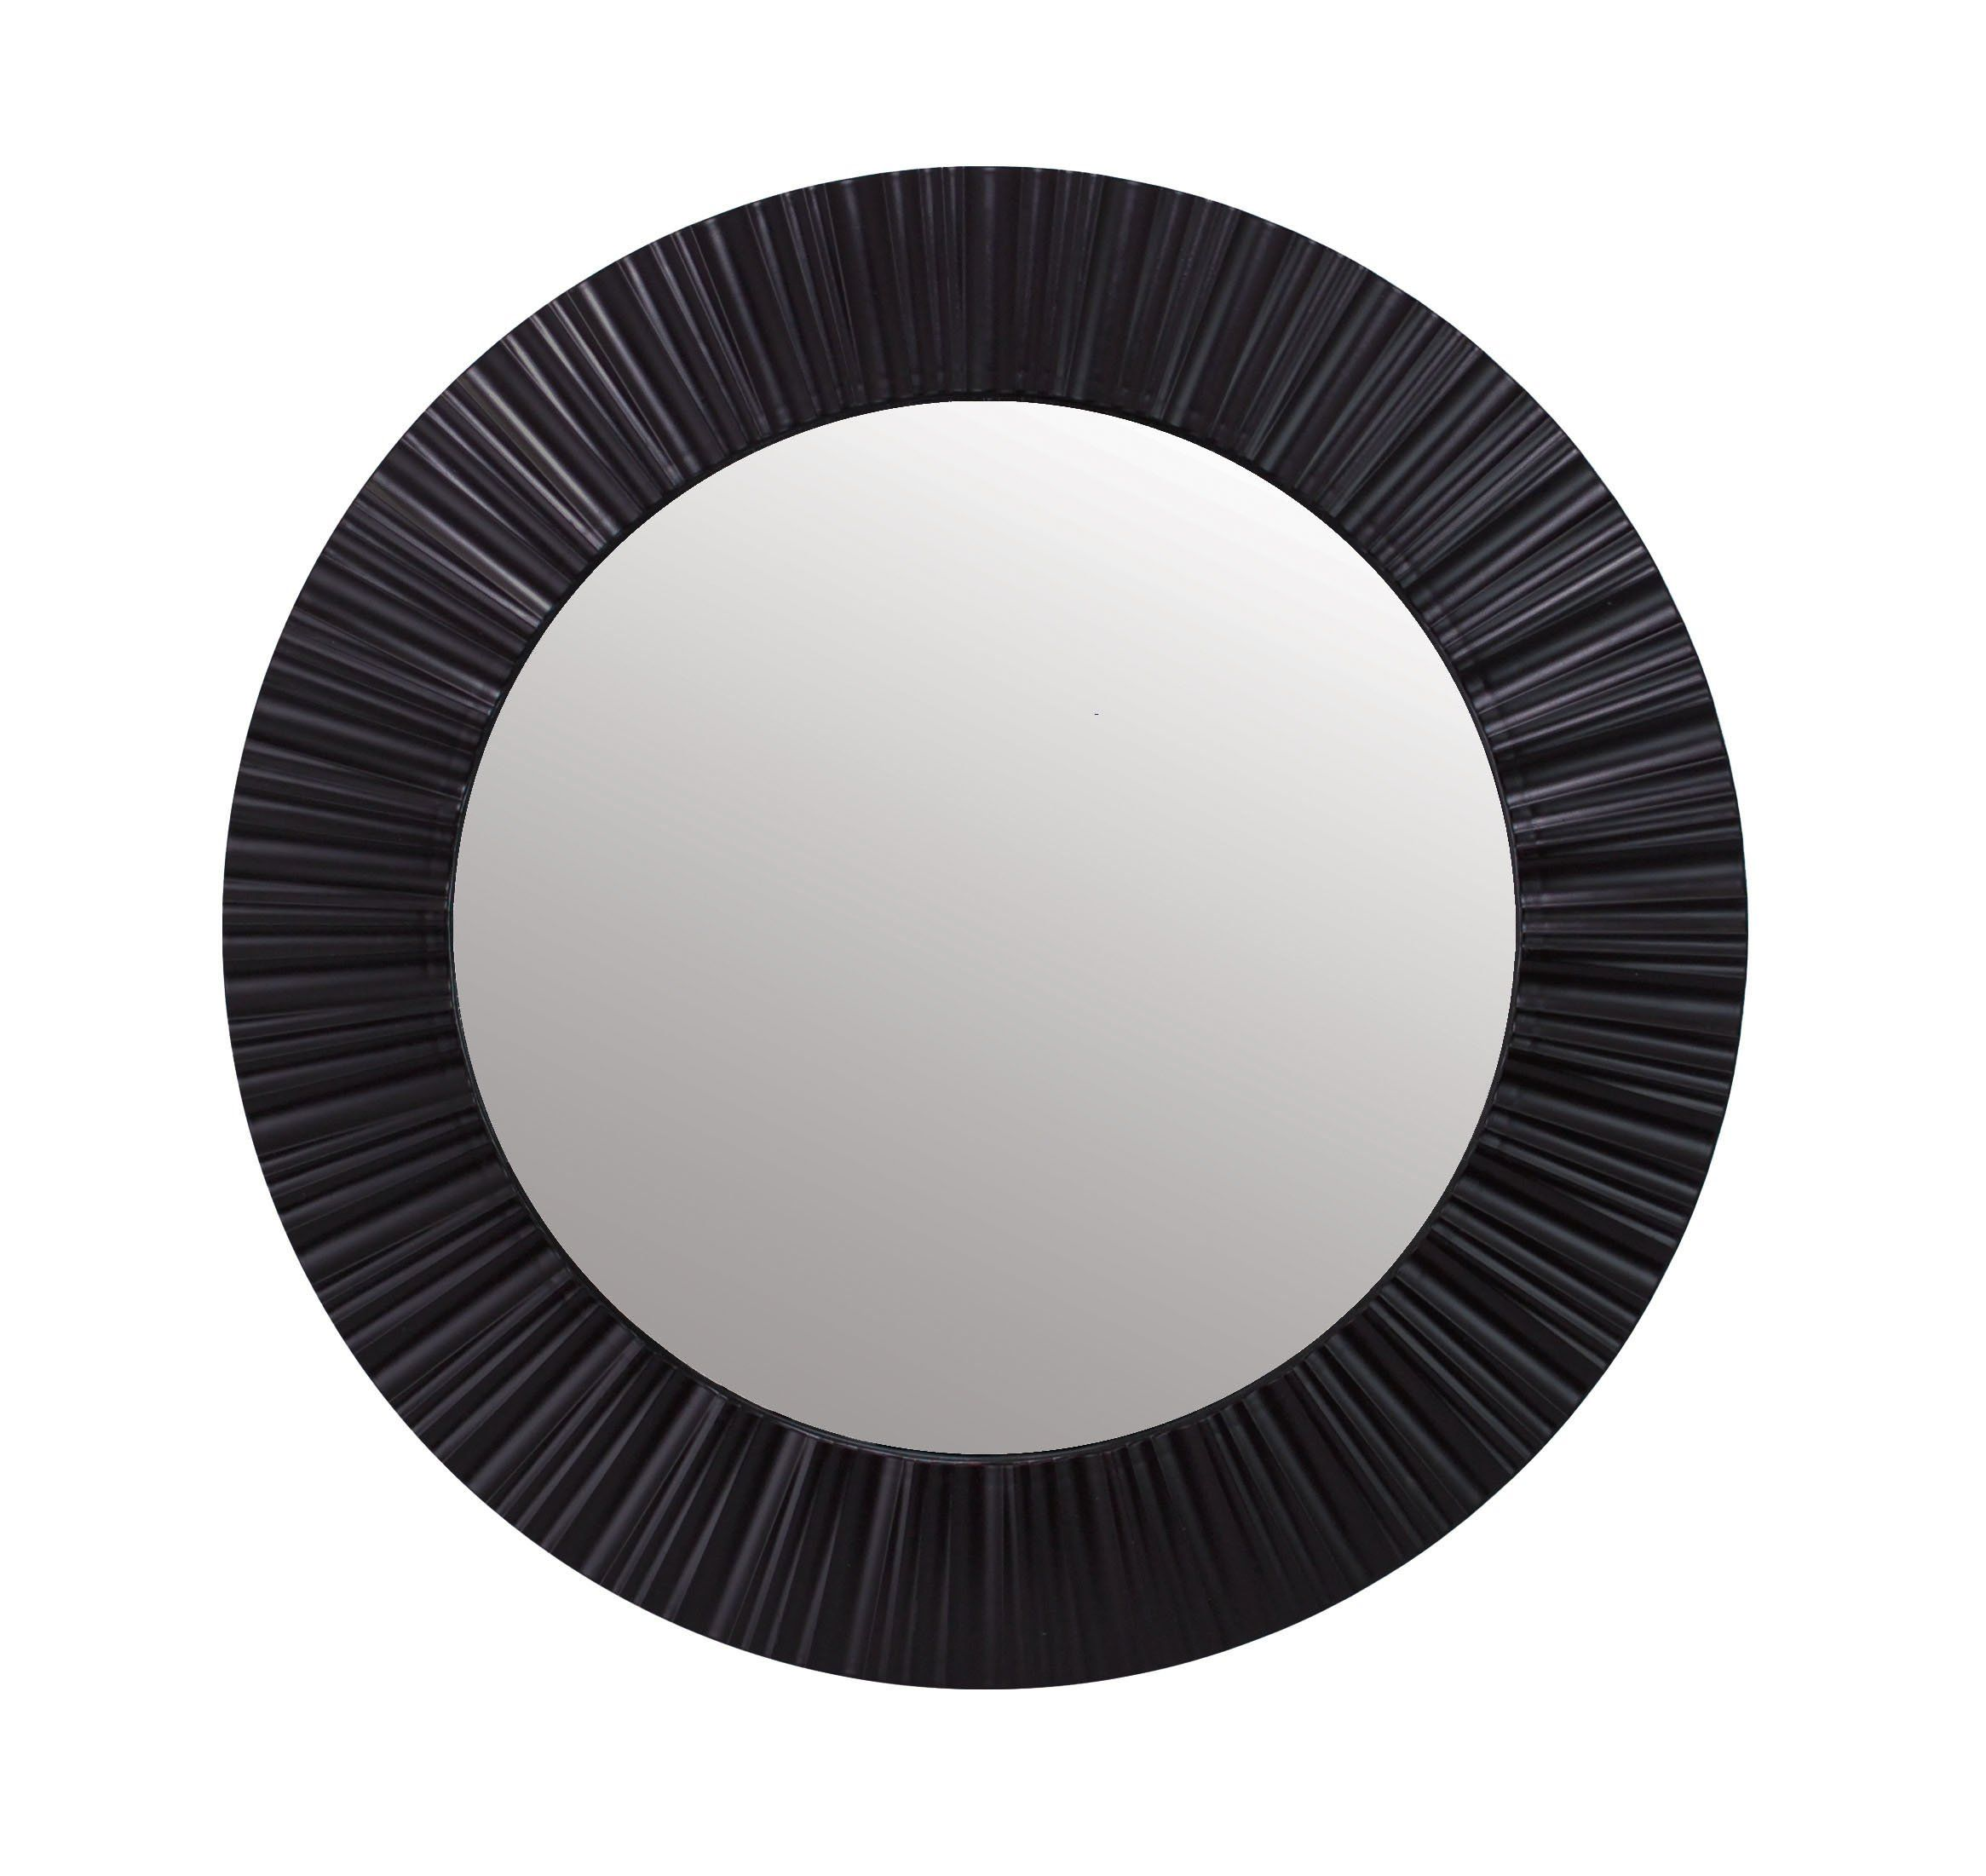 Kiera Grace Groove 20inch Round Mirror Black Click Picture To Evaluate More Details This Is An Affiliate Black Round Mirror Mirror Wall Decor Round Mirrors